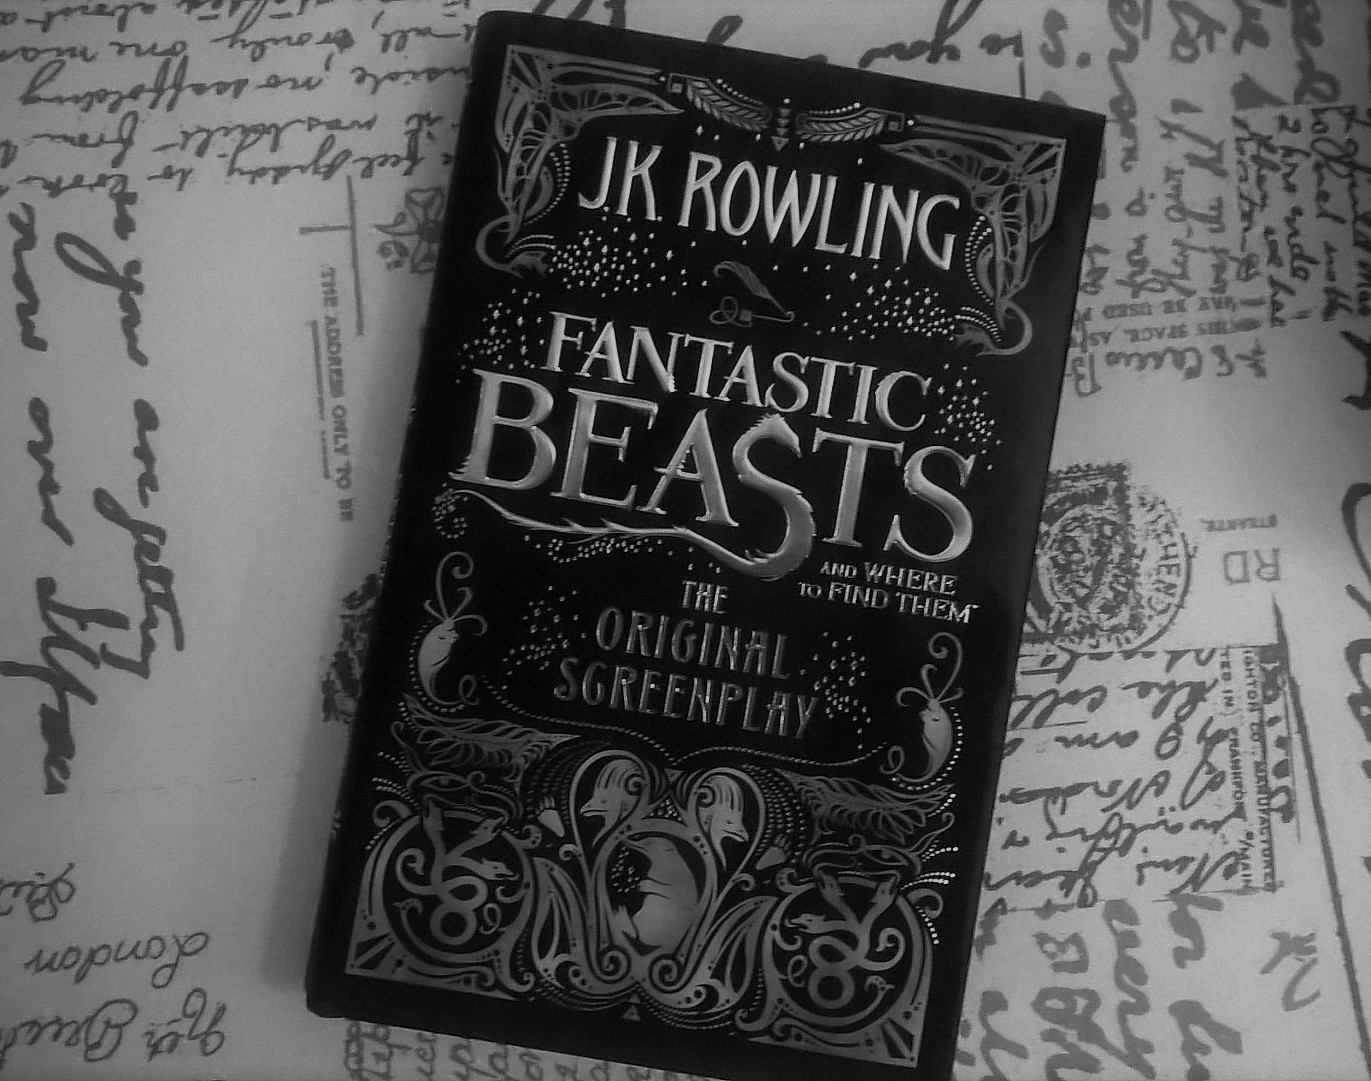 fantastic beasts and where to find them book. plays fantastic beats screenplay humpo show beasts and where to find them book